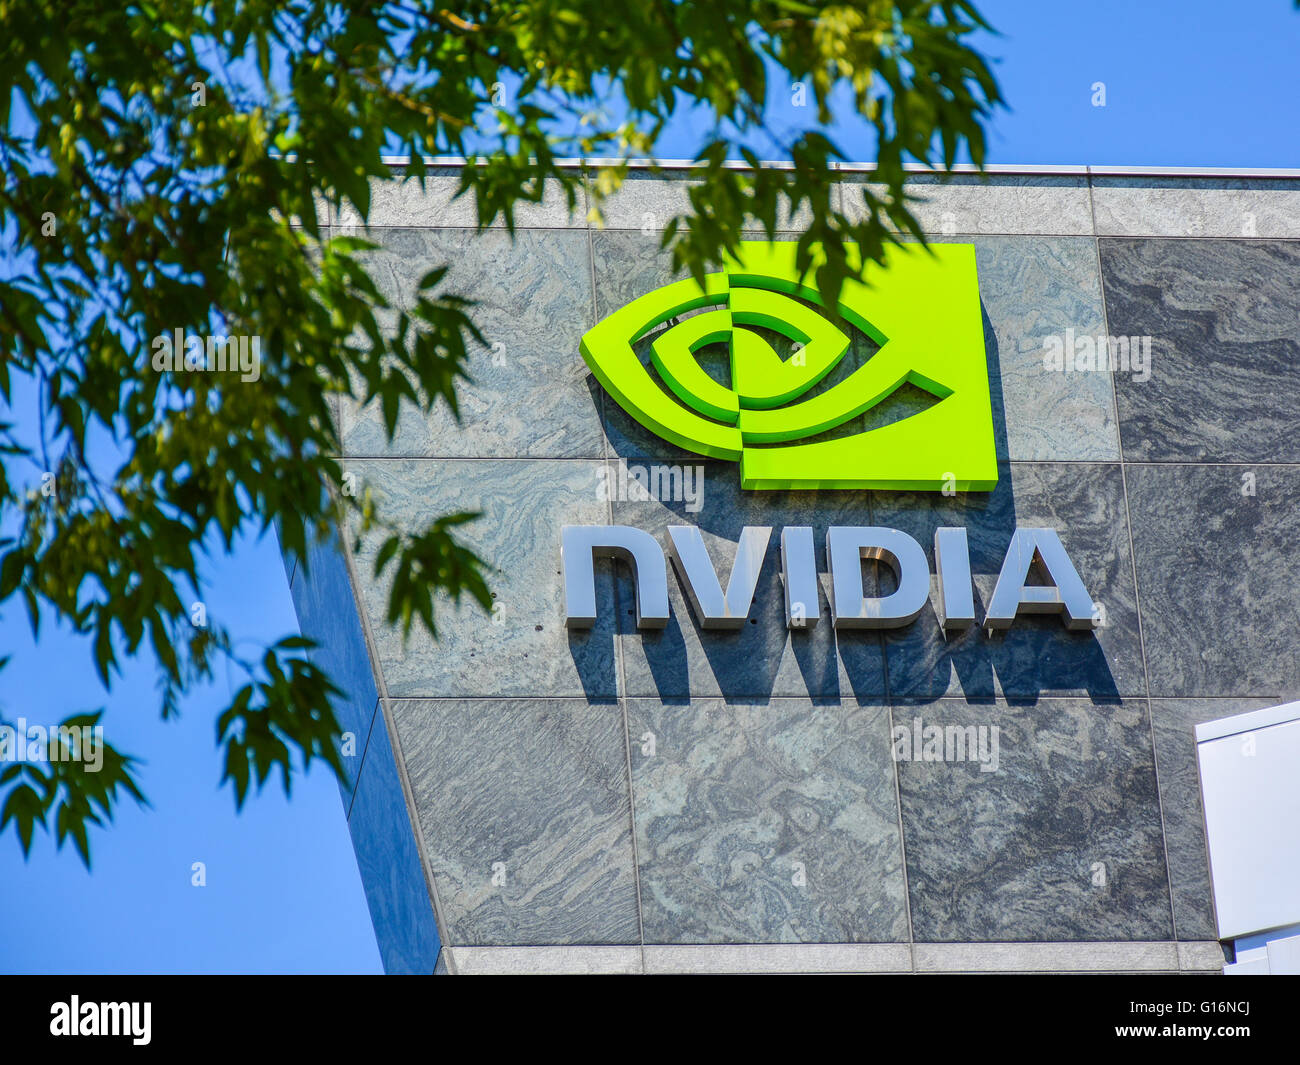 Nvidia Building - Santa Clara, California, USA Stock Photo